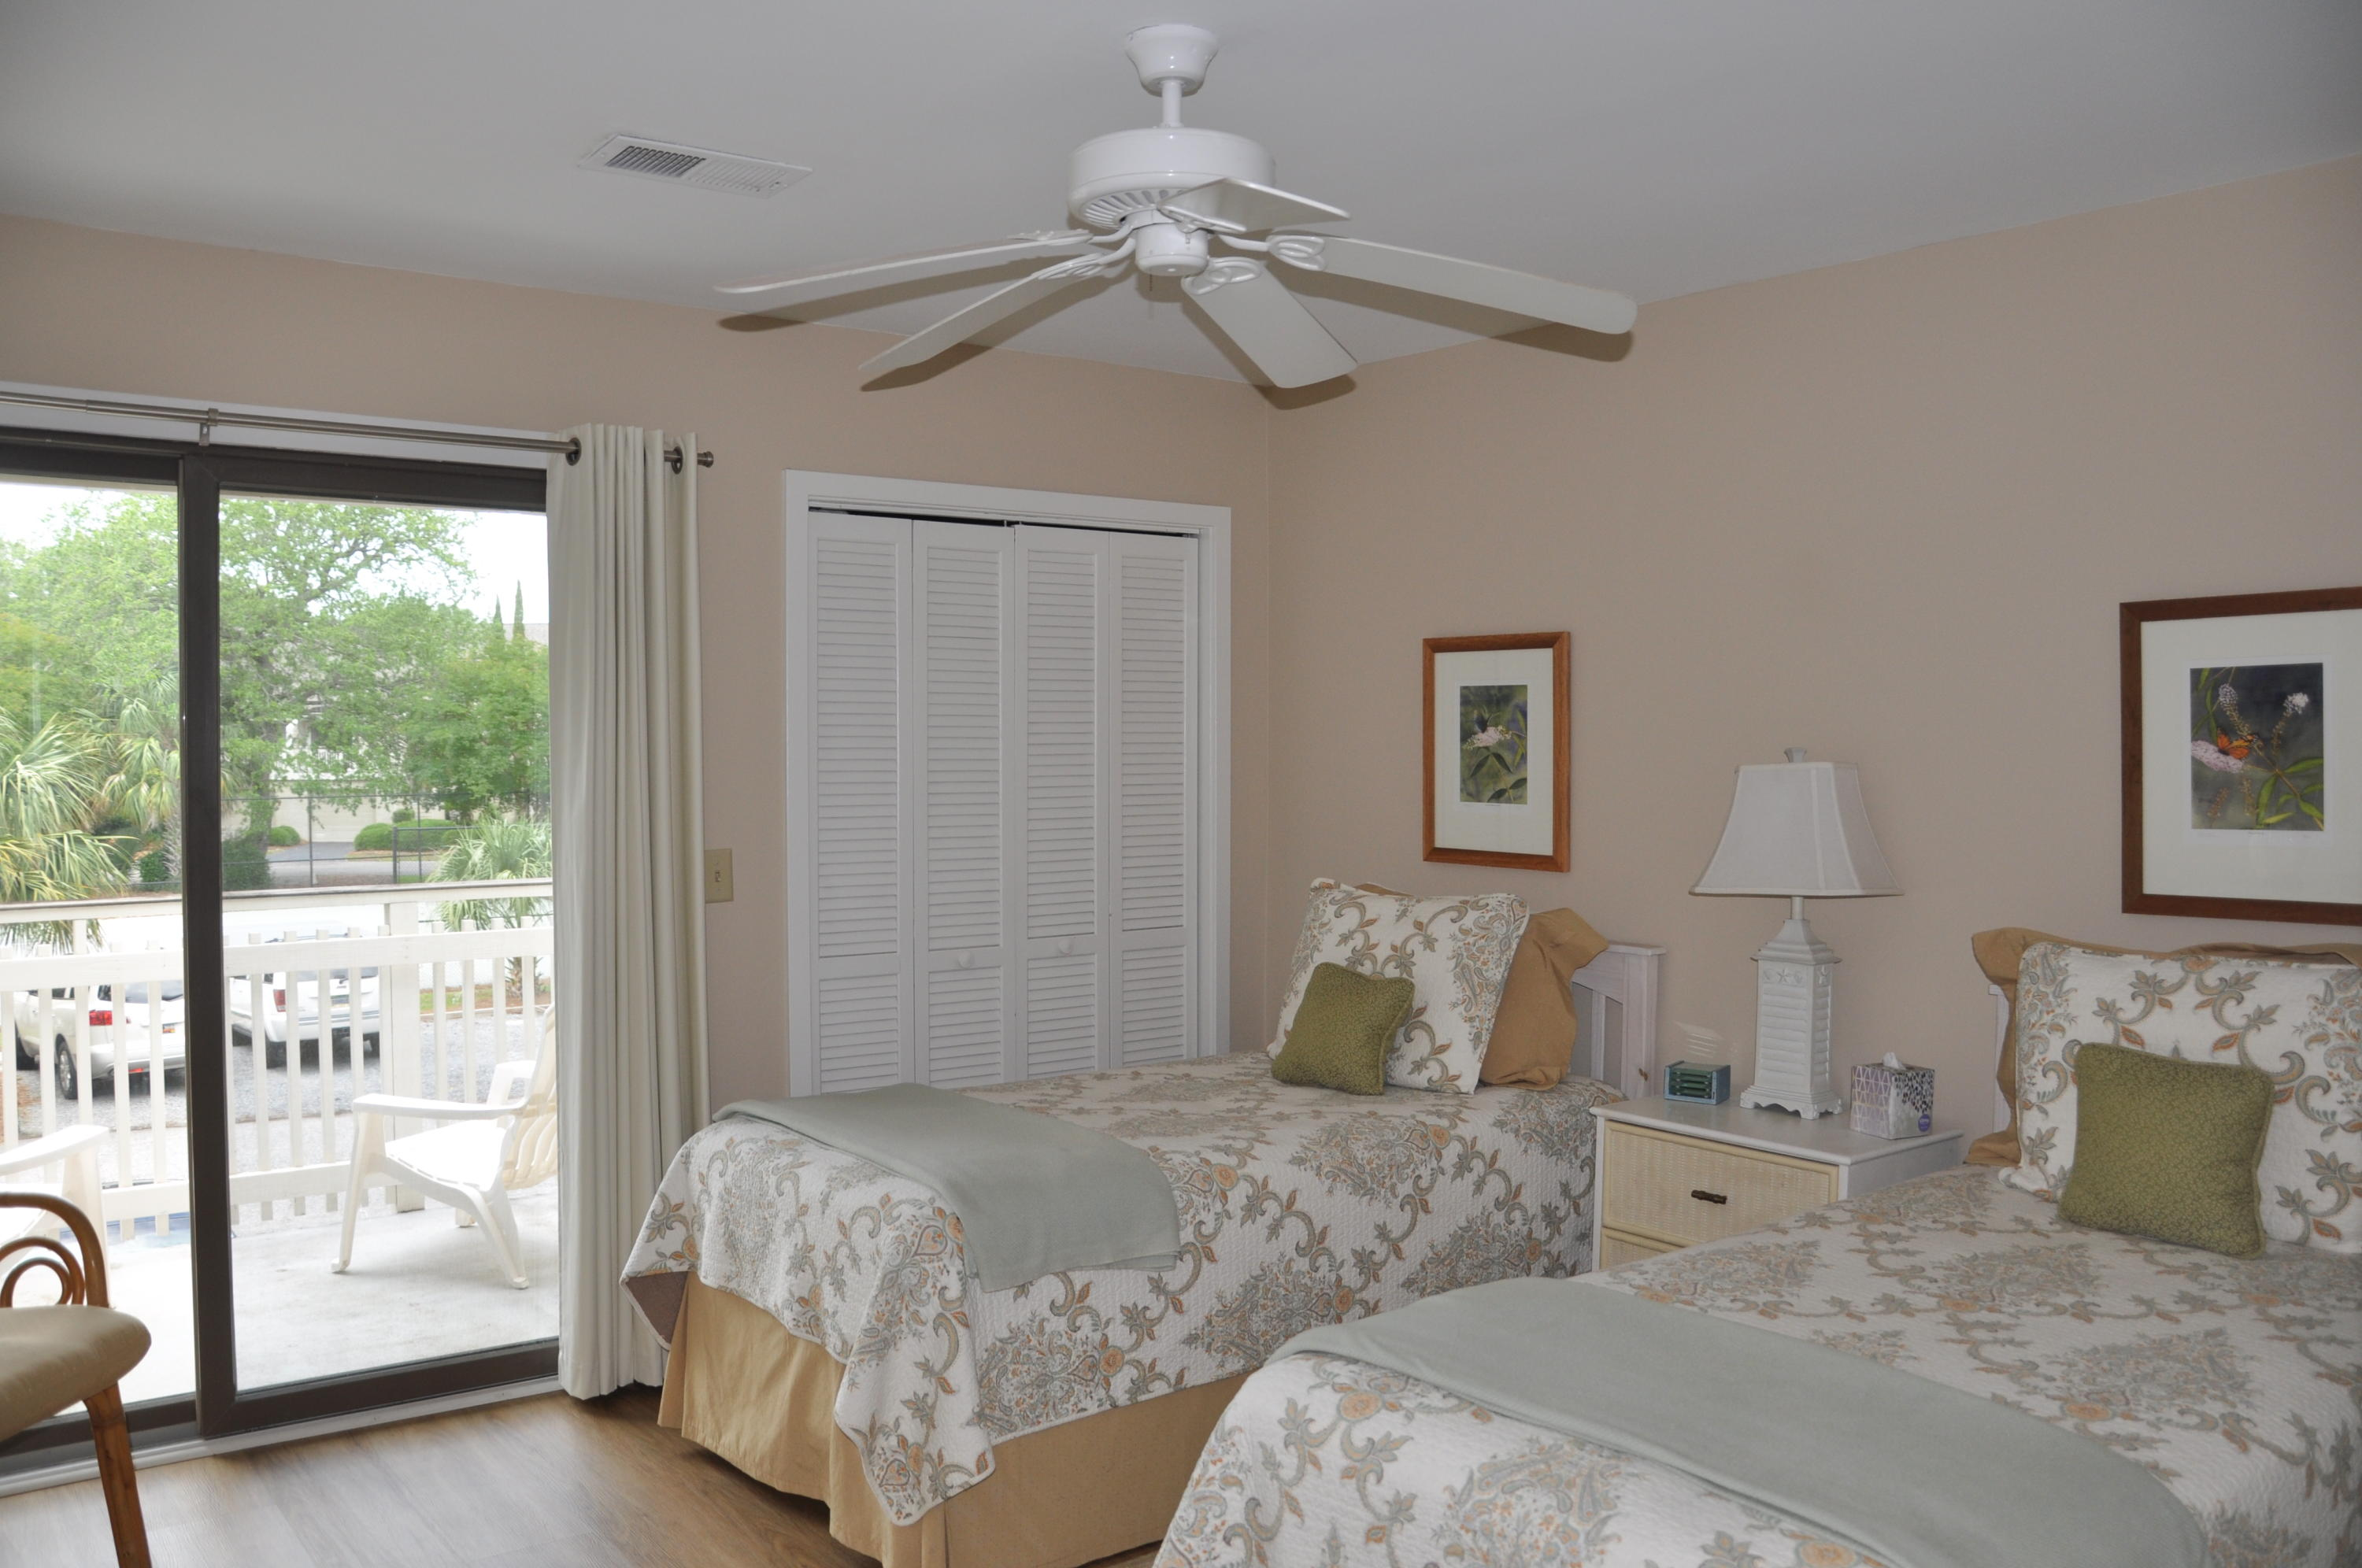 Fairway Villas Homes For Sale - 25 Fairway Dunes (1/6 Share), Isle of Palms, SC - 17